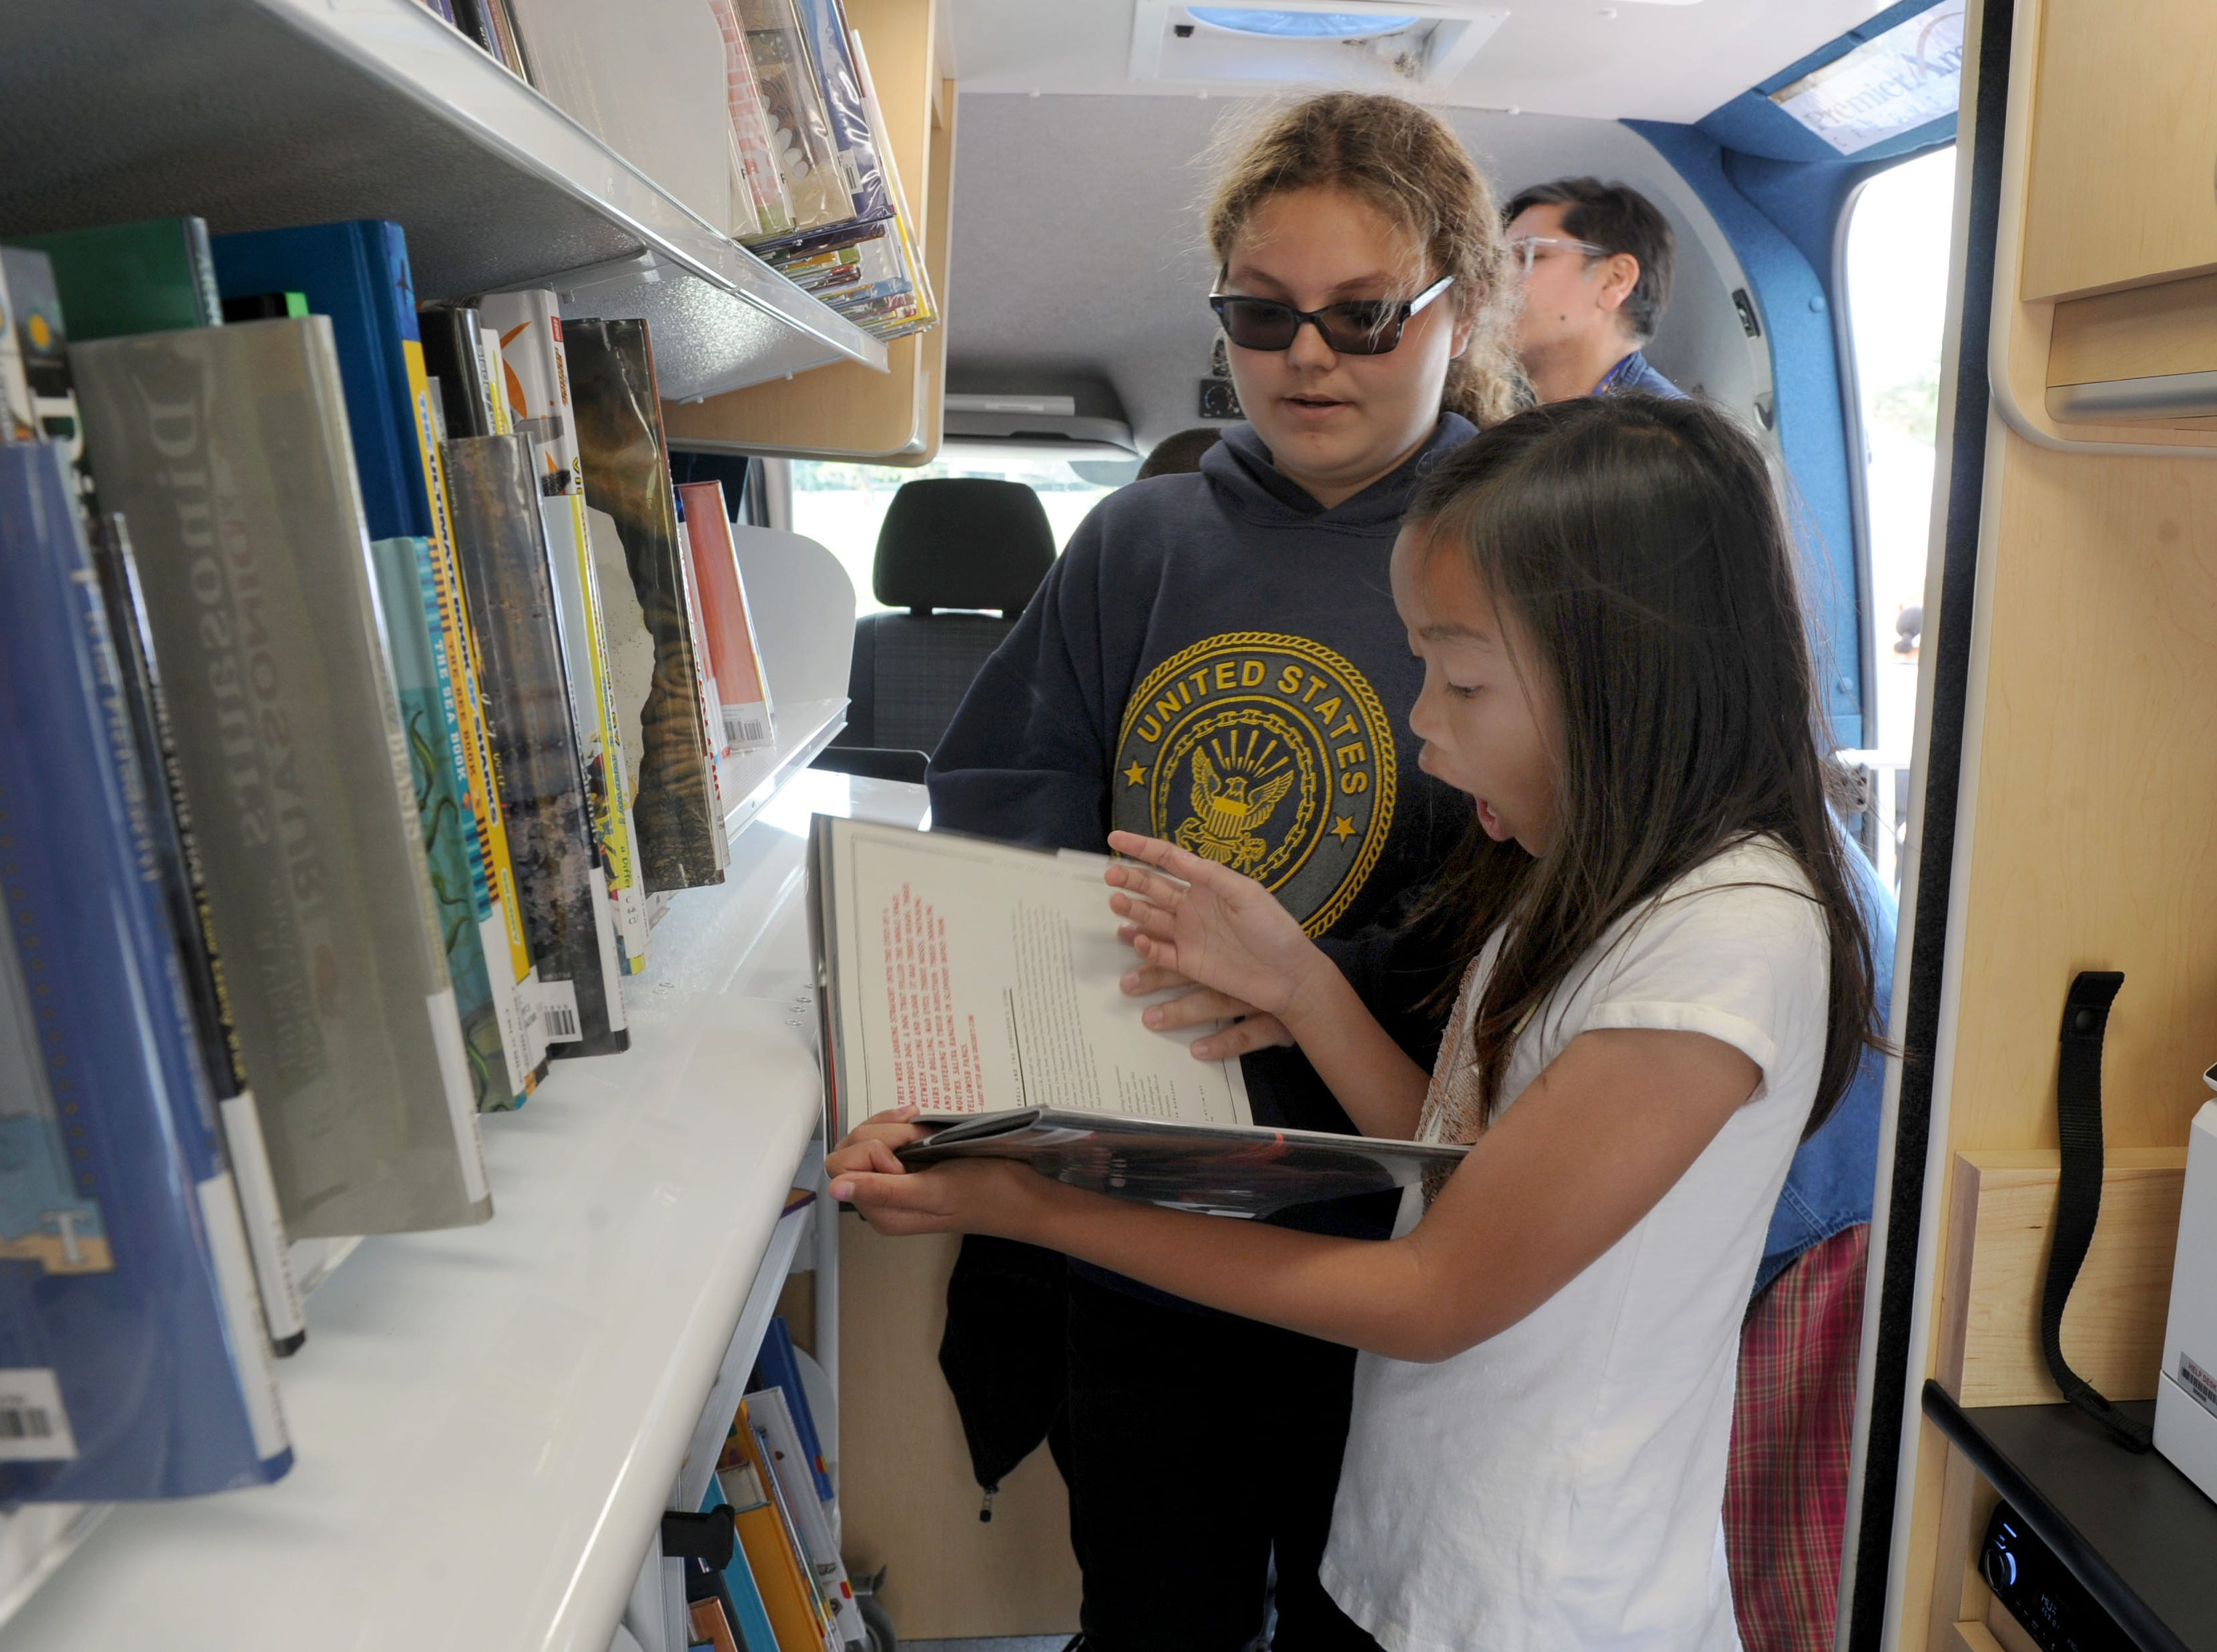 Mhyca Chua, front,  is surprised to find a Harry Potter book with her friend Jaylee Kiel inside the Ventura County library system's new mobile library Tuesday at the Ventura County Government Center. The 26-foot, fuel-efficient vehicle is stocked with many of the same services found in a traditional library.